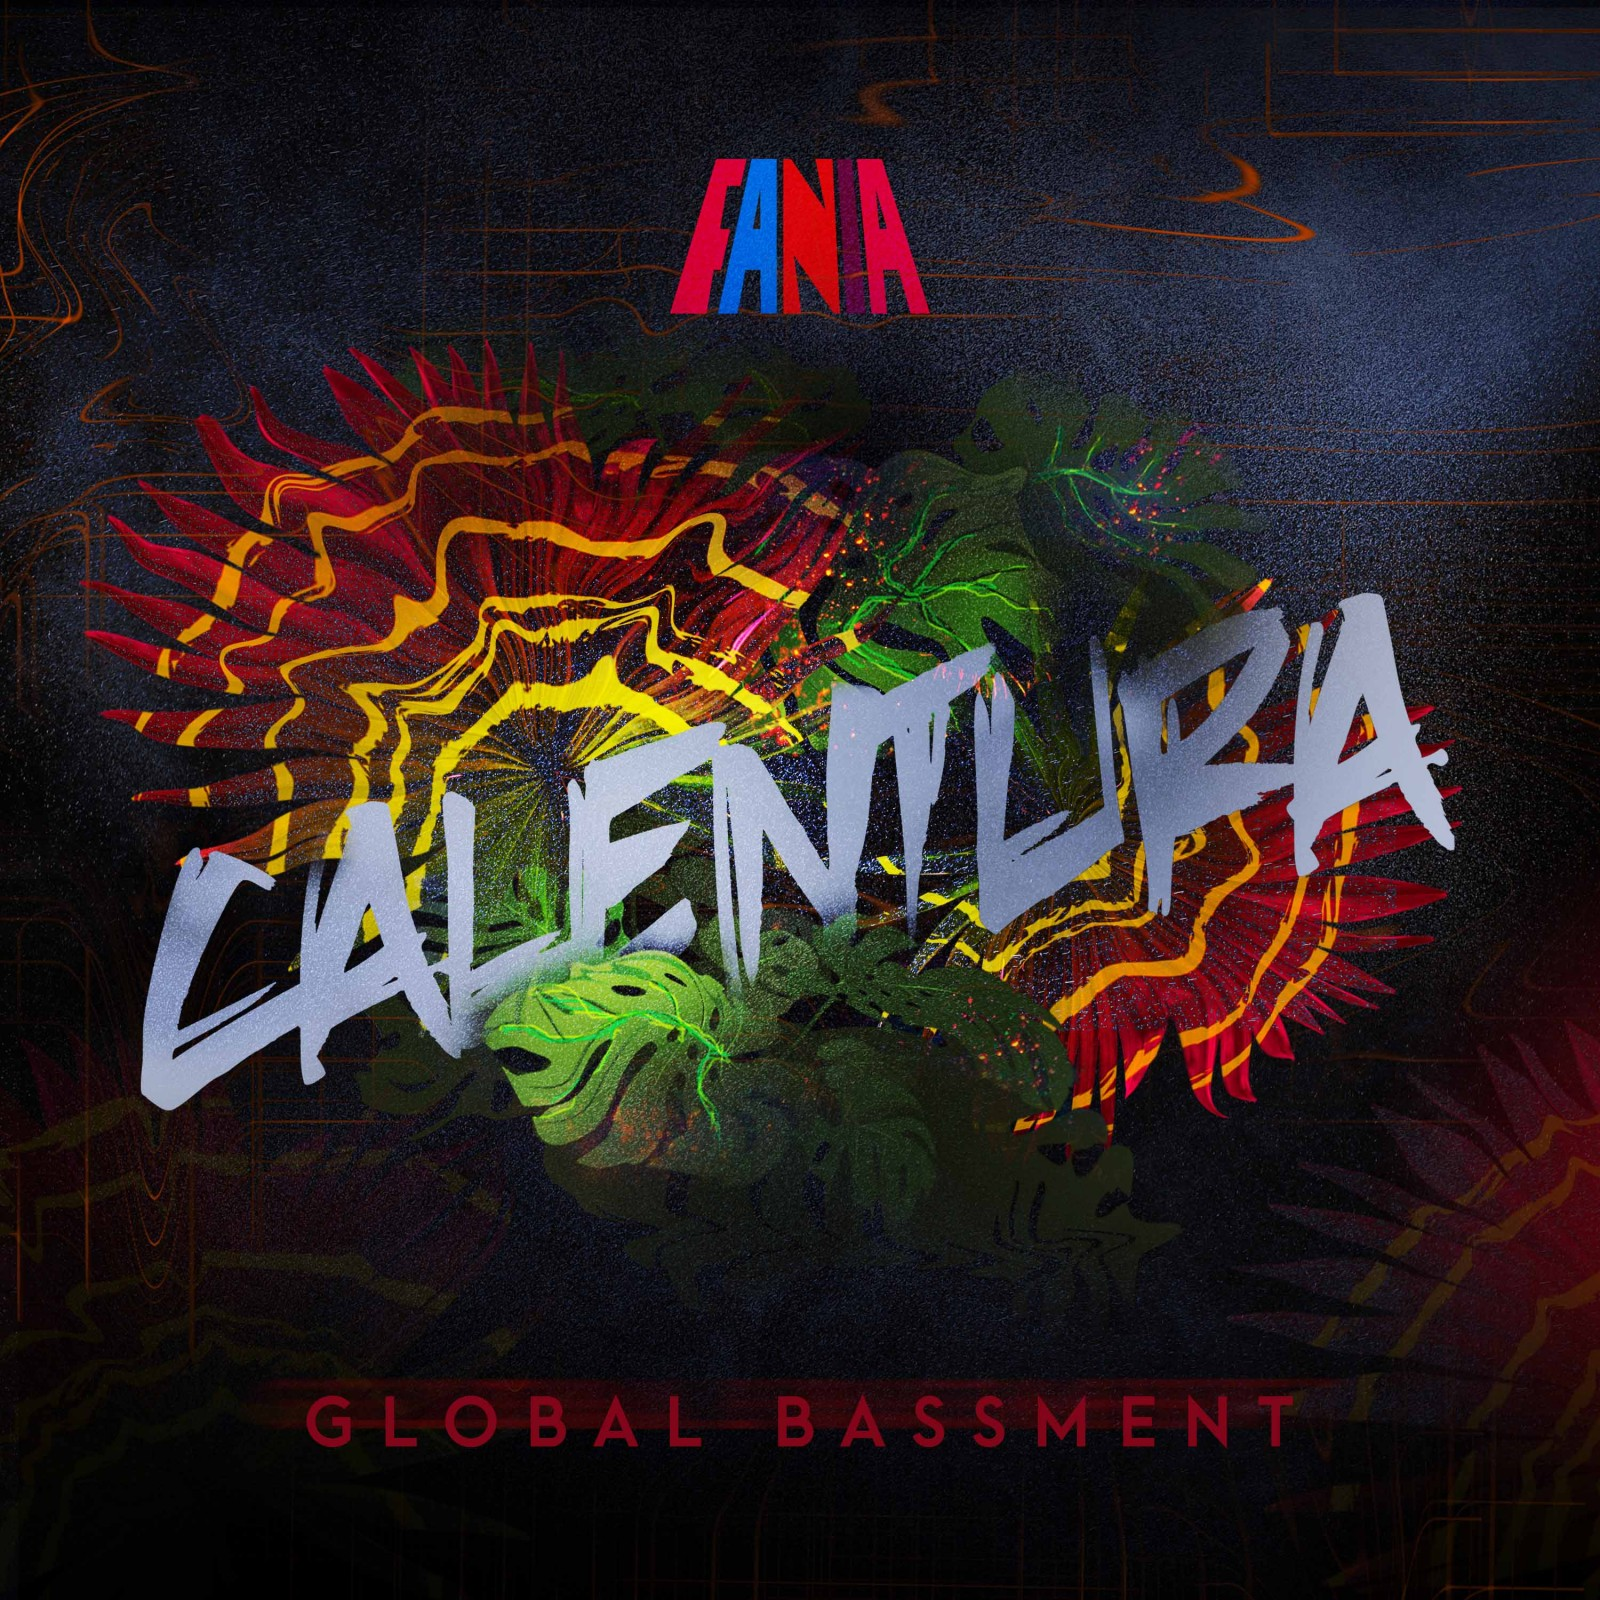 Fania Records' Rebellious Spirit Lives With 'Calentura: Global Bassment' Compilation